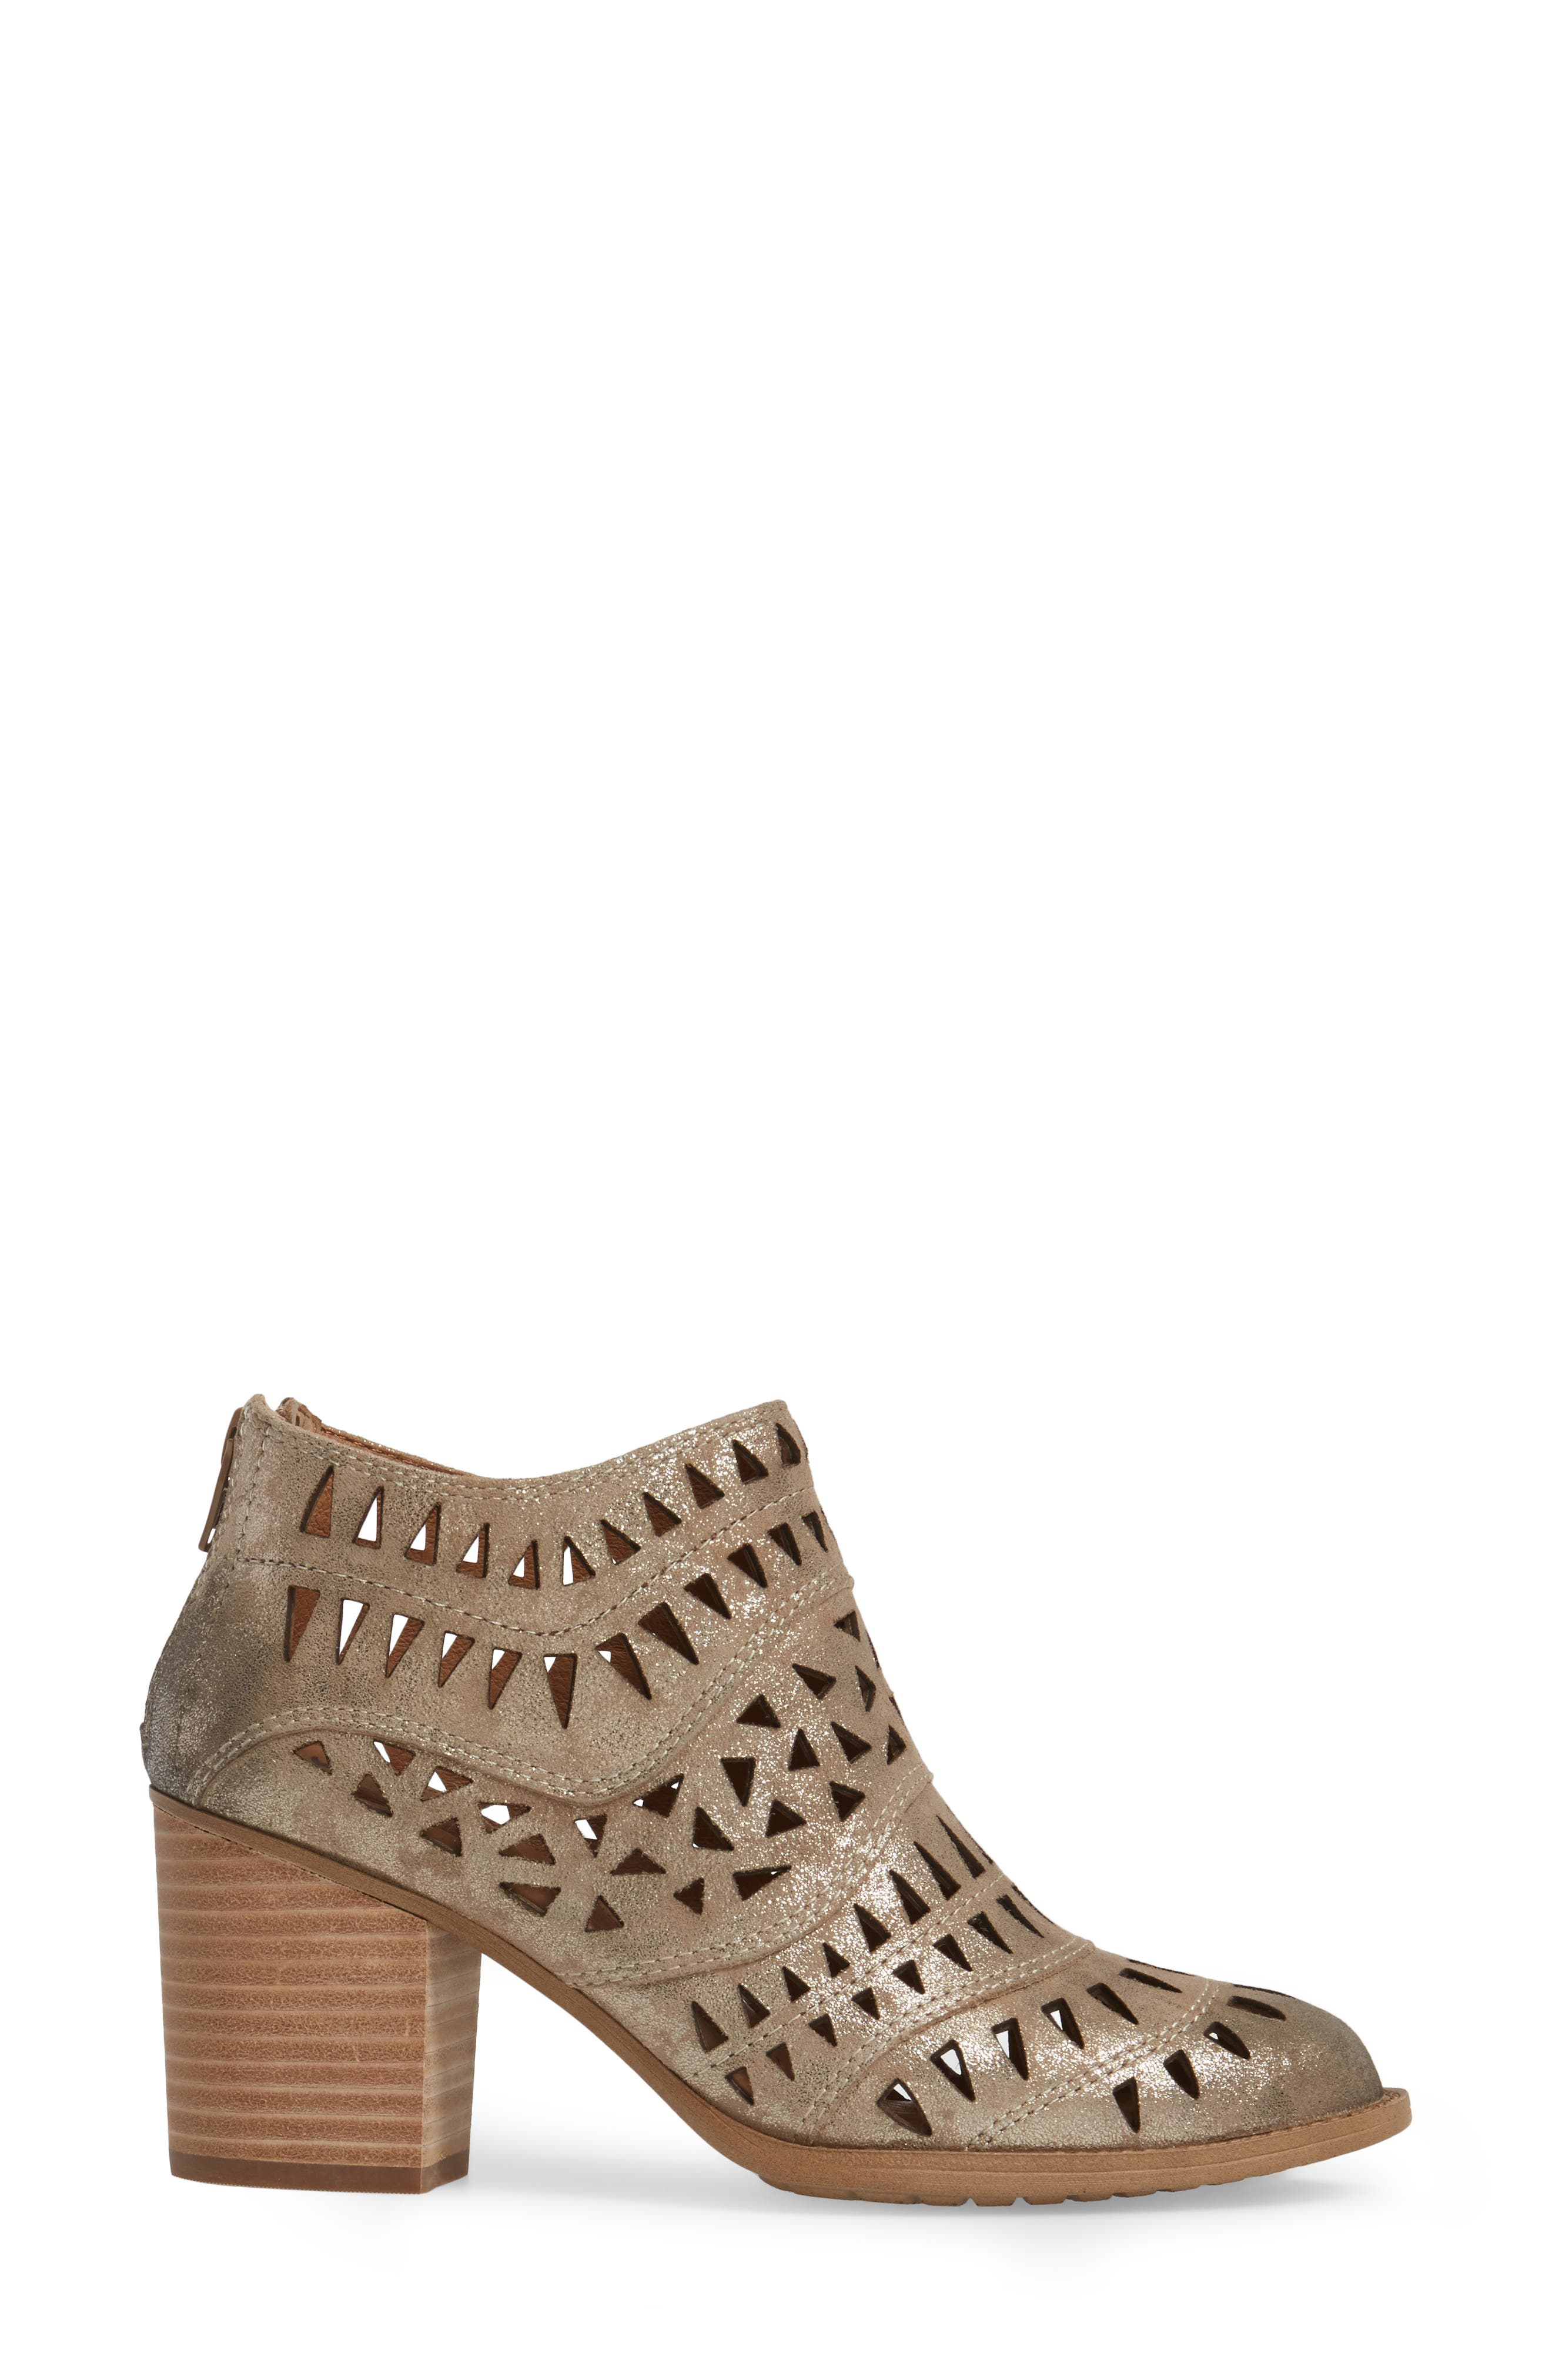 Westwood Laser Cut Bootie,                             Alternate thumbnail 3, color,                             Anthracite Distressed Foil